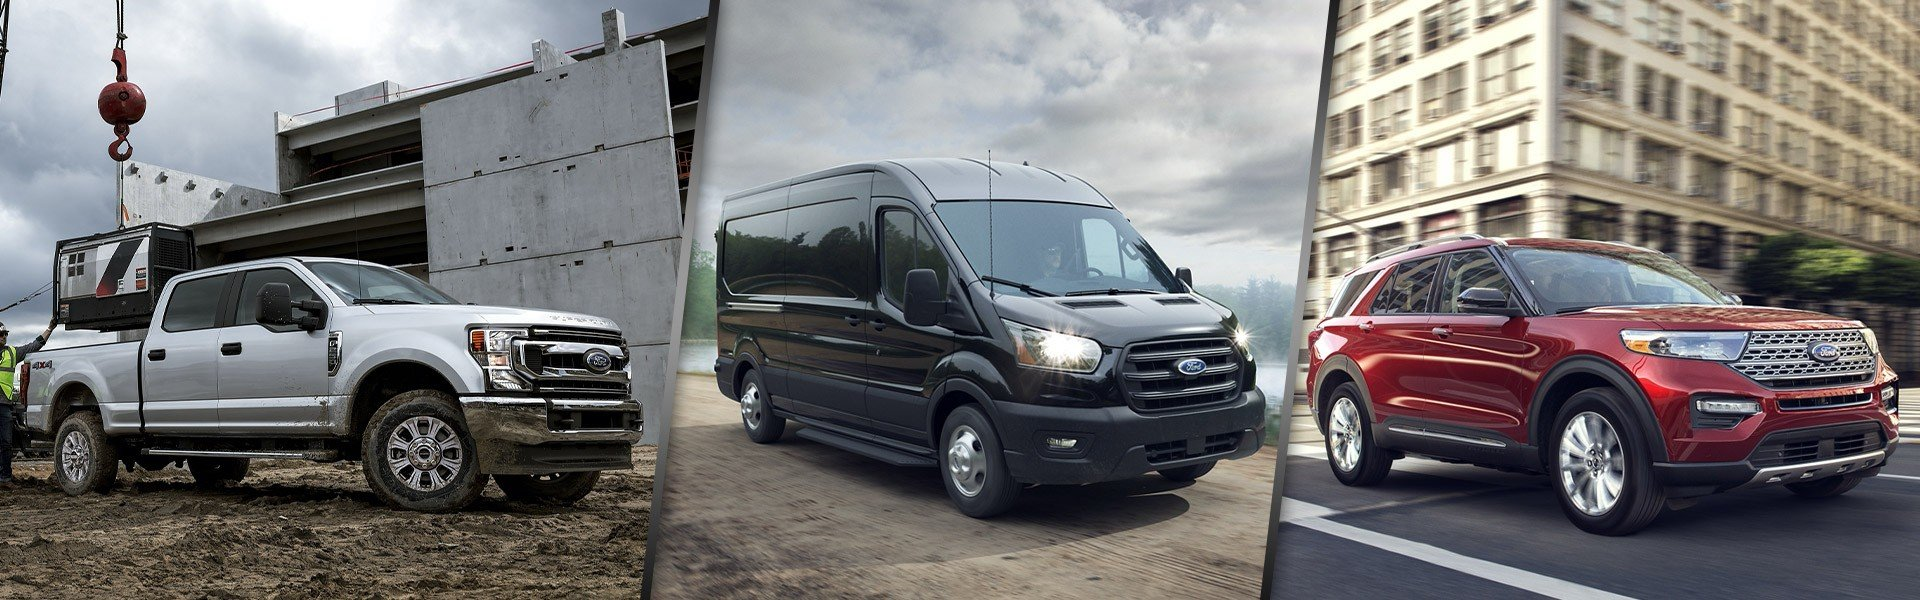 Ford commercial vehicles FL